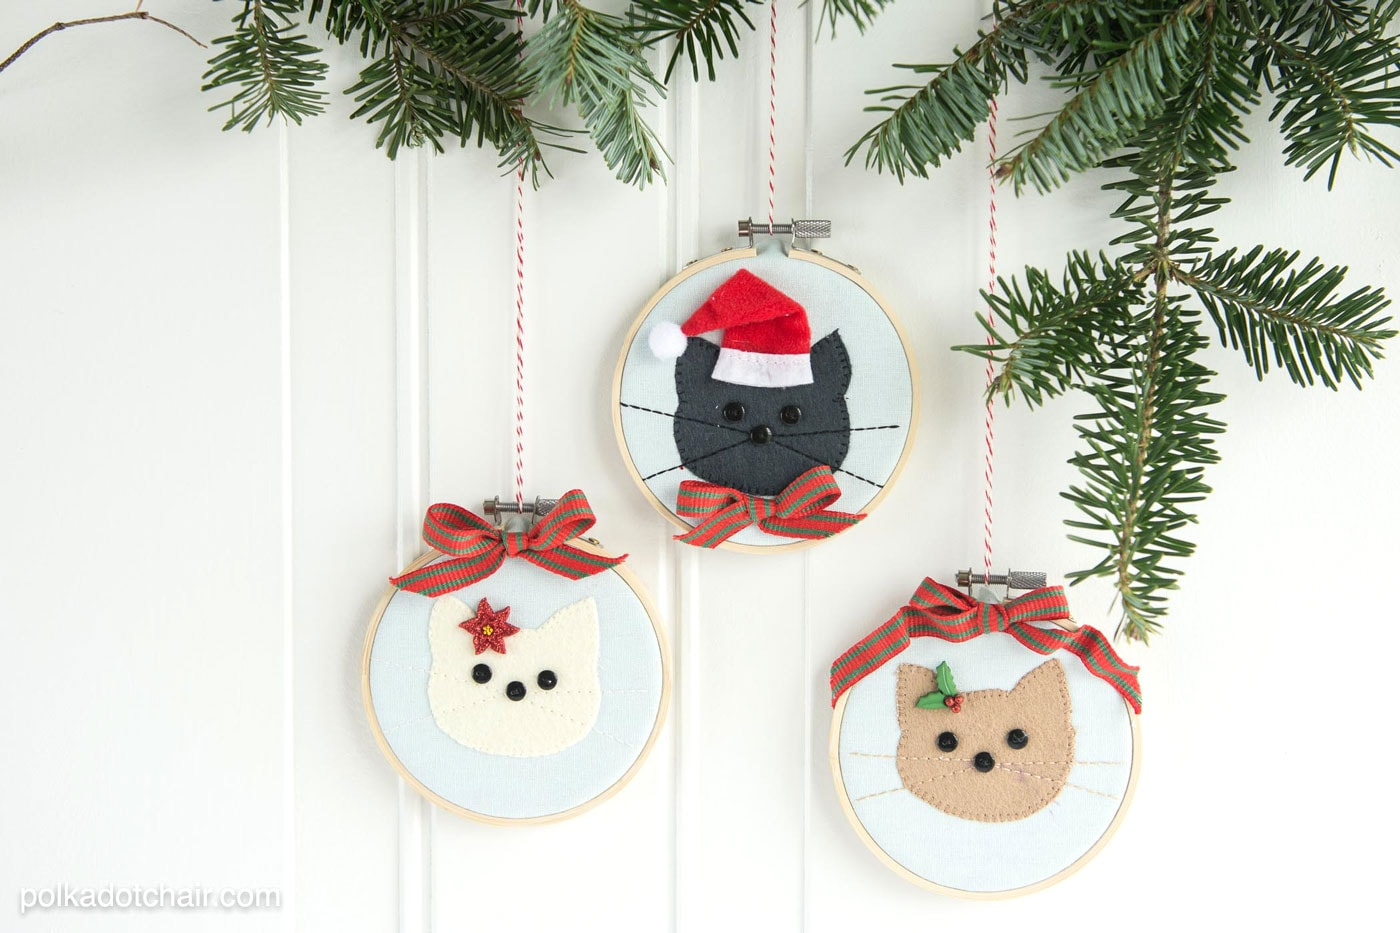 Cat Embroidery Hoop Christmas Ornaments - The Polka Dot Chair